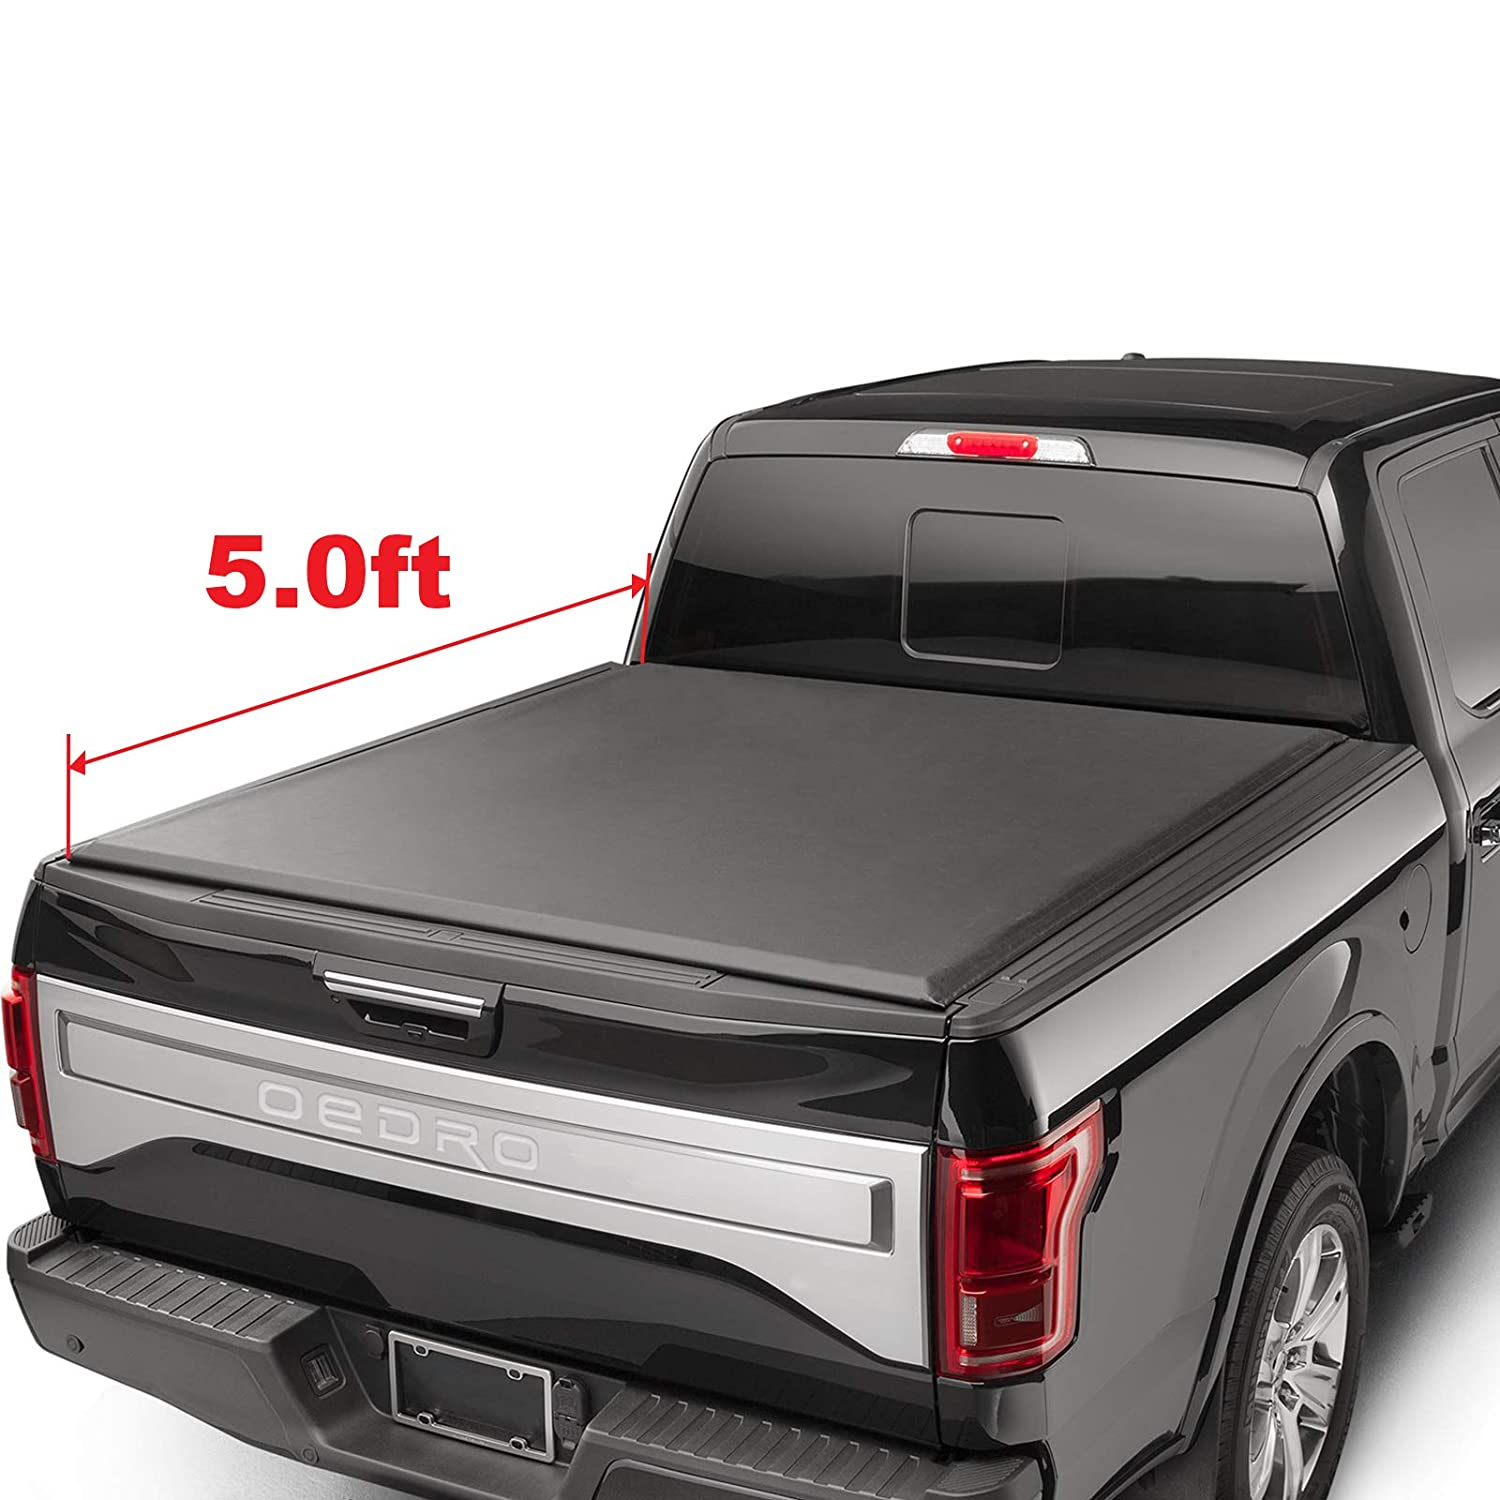 oEdRo Roll Up Truck Bed Tonneau Cover Compatible with 2014-2018 Chevy Silverado/GMC Sierra 1500 | Fleetside 5.8' Bed | for Models Without Utility Track System